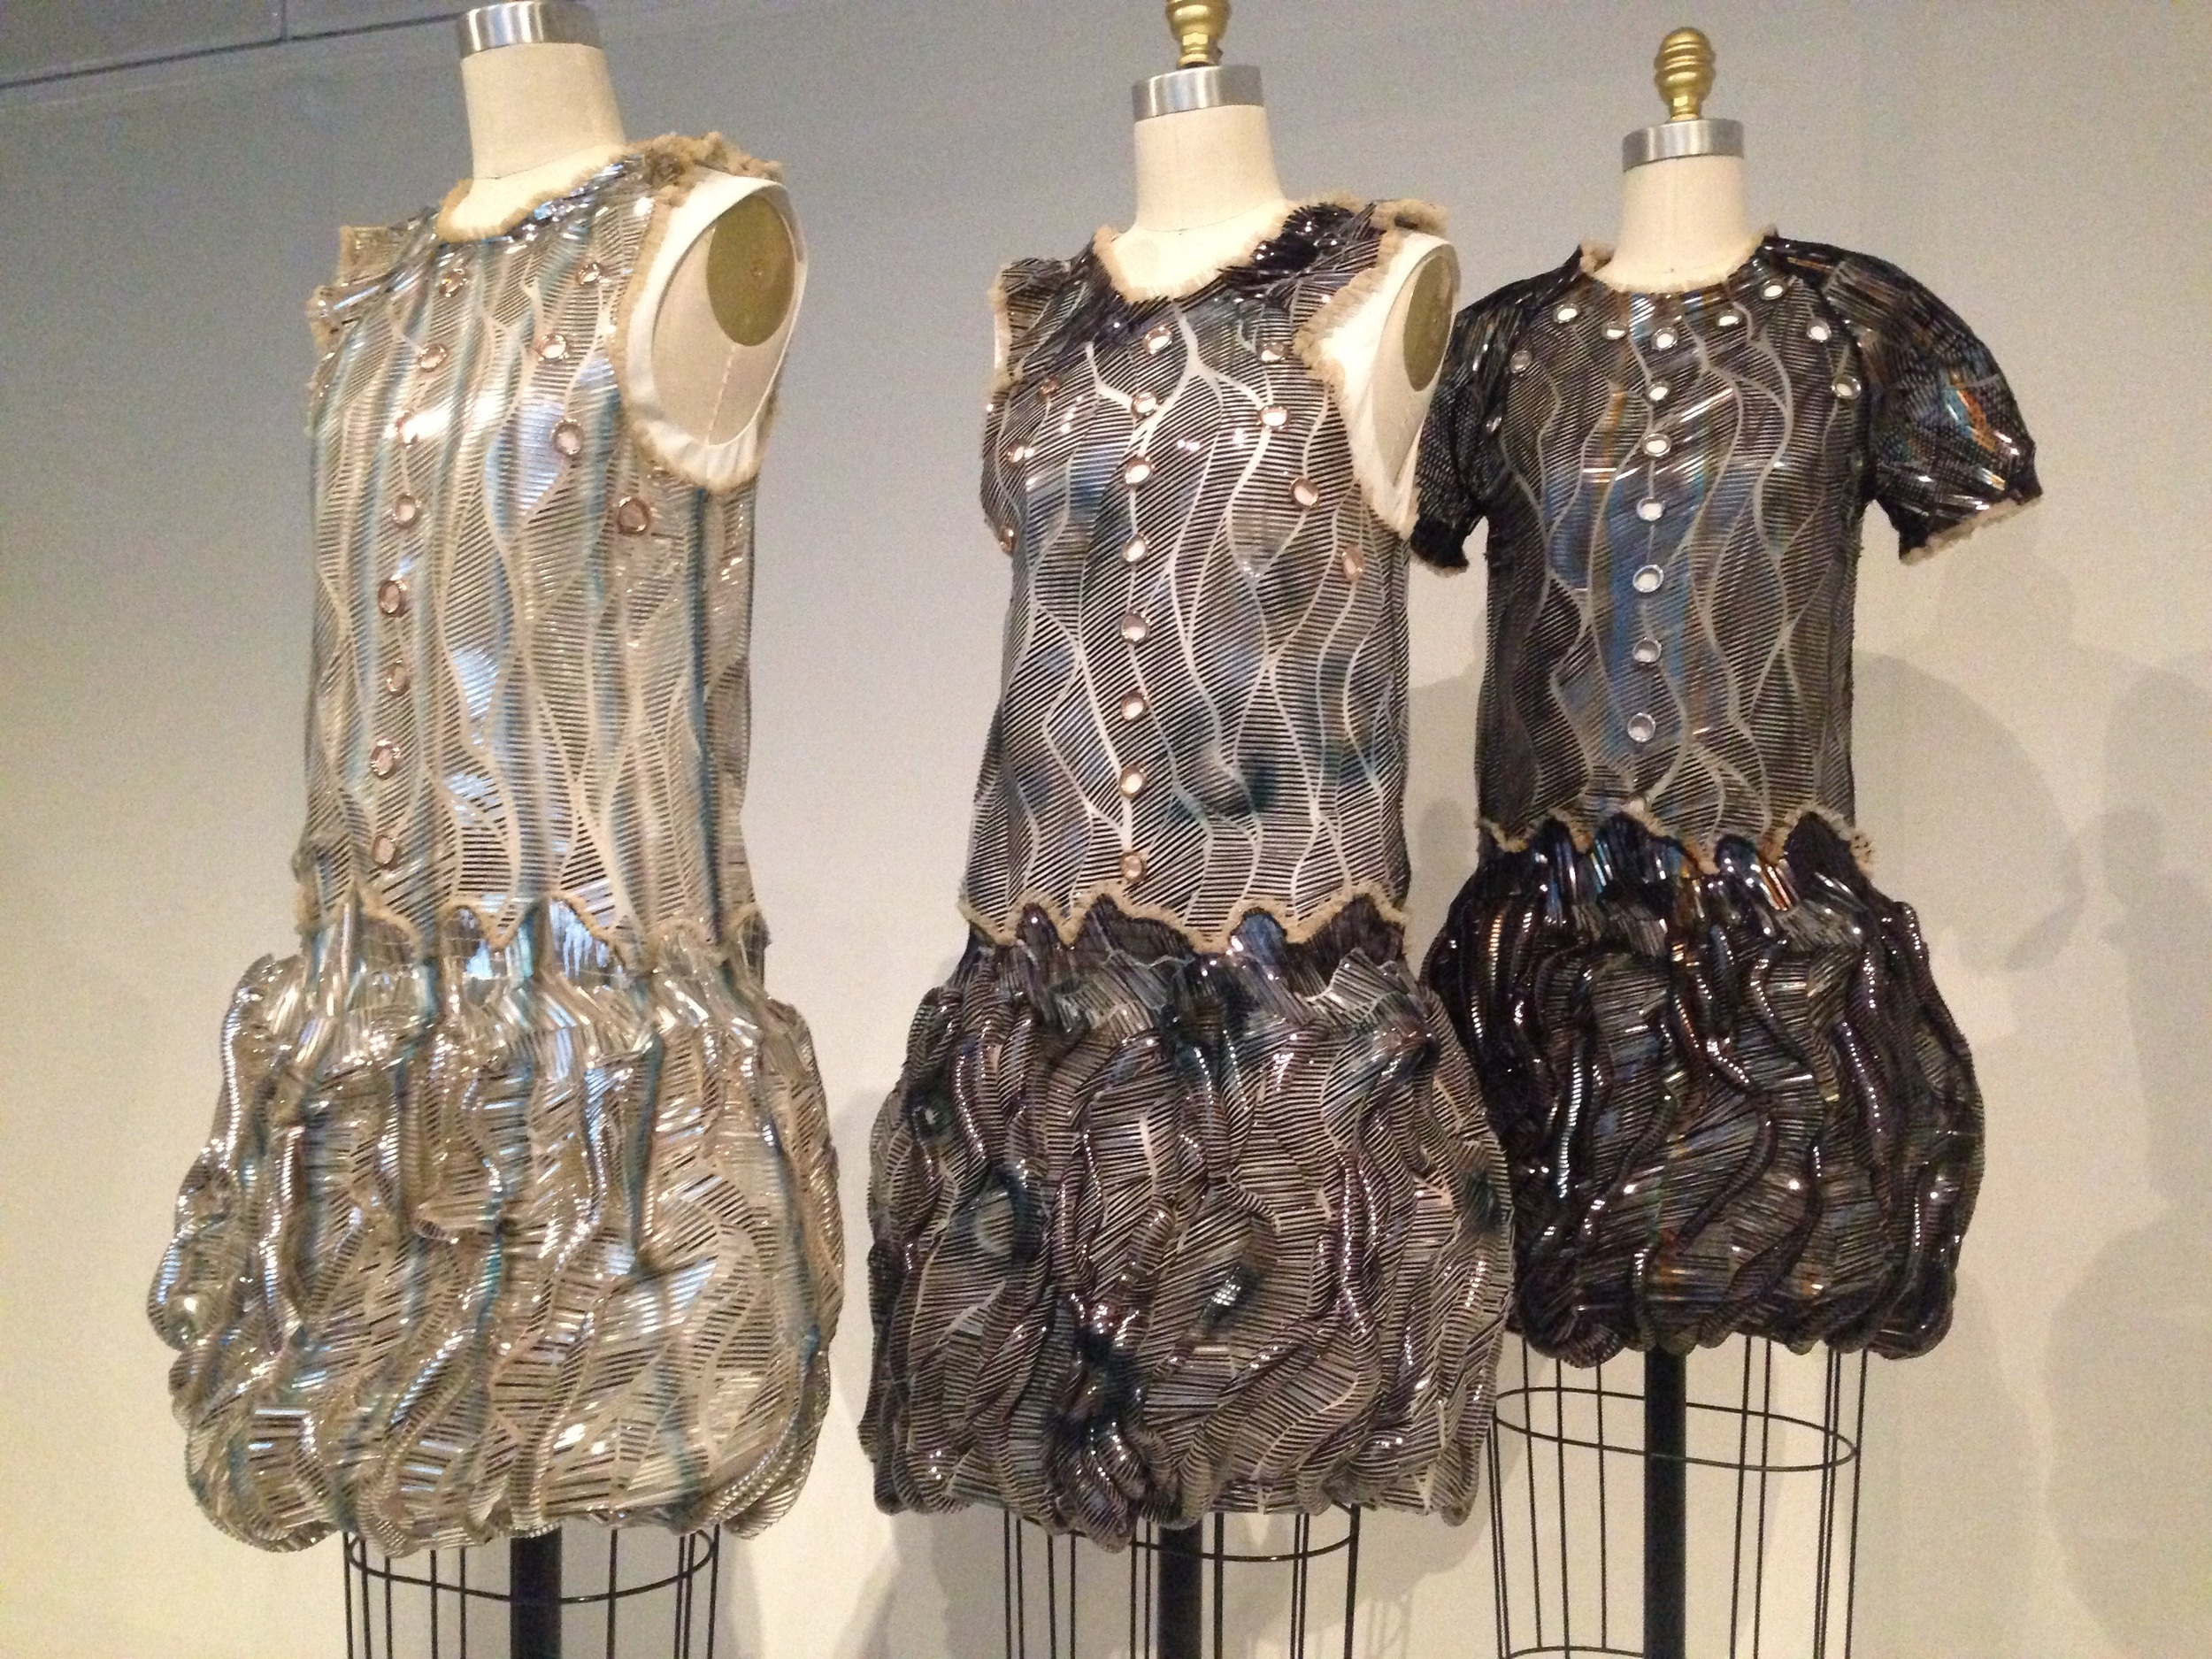 I forget the designer of these dresses. I do love the metallic accents and textures.